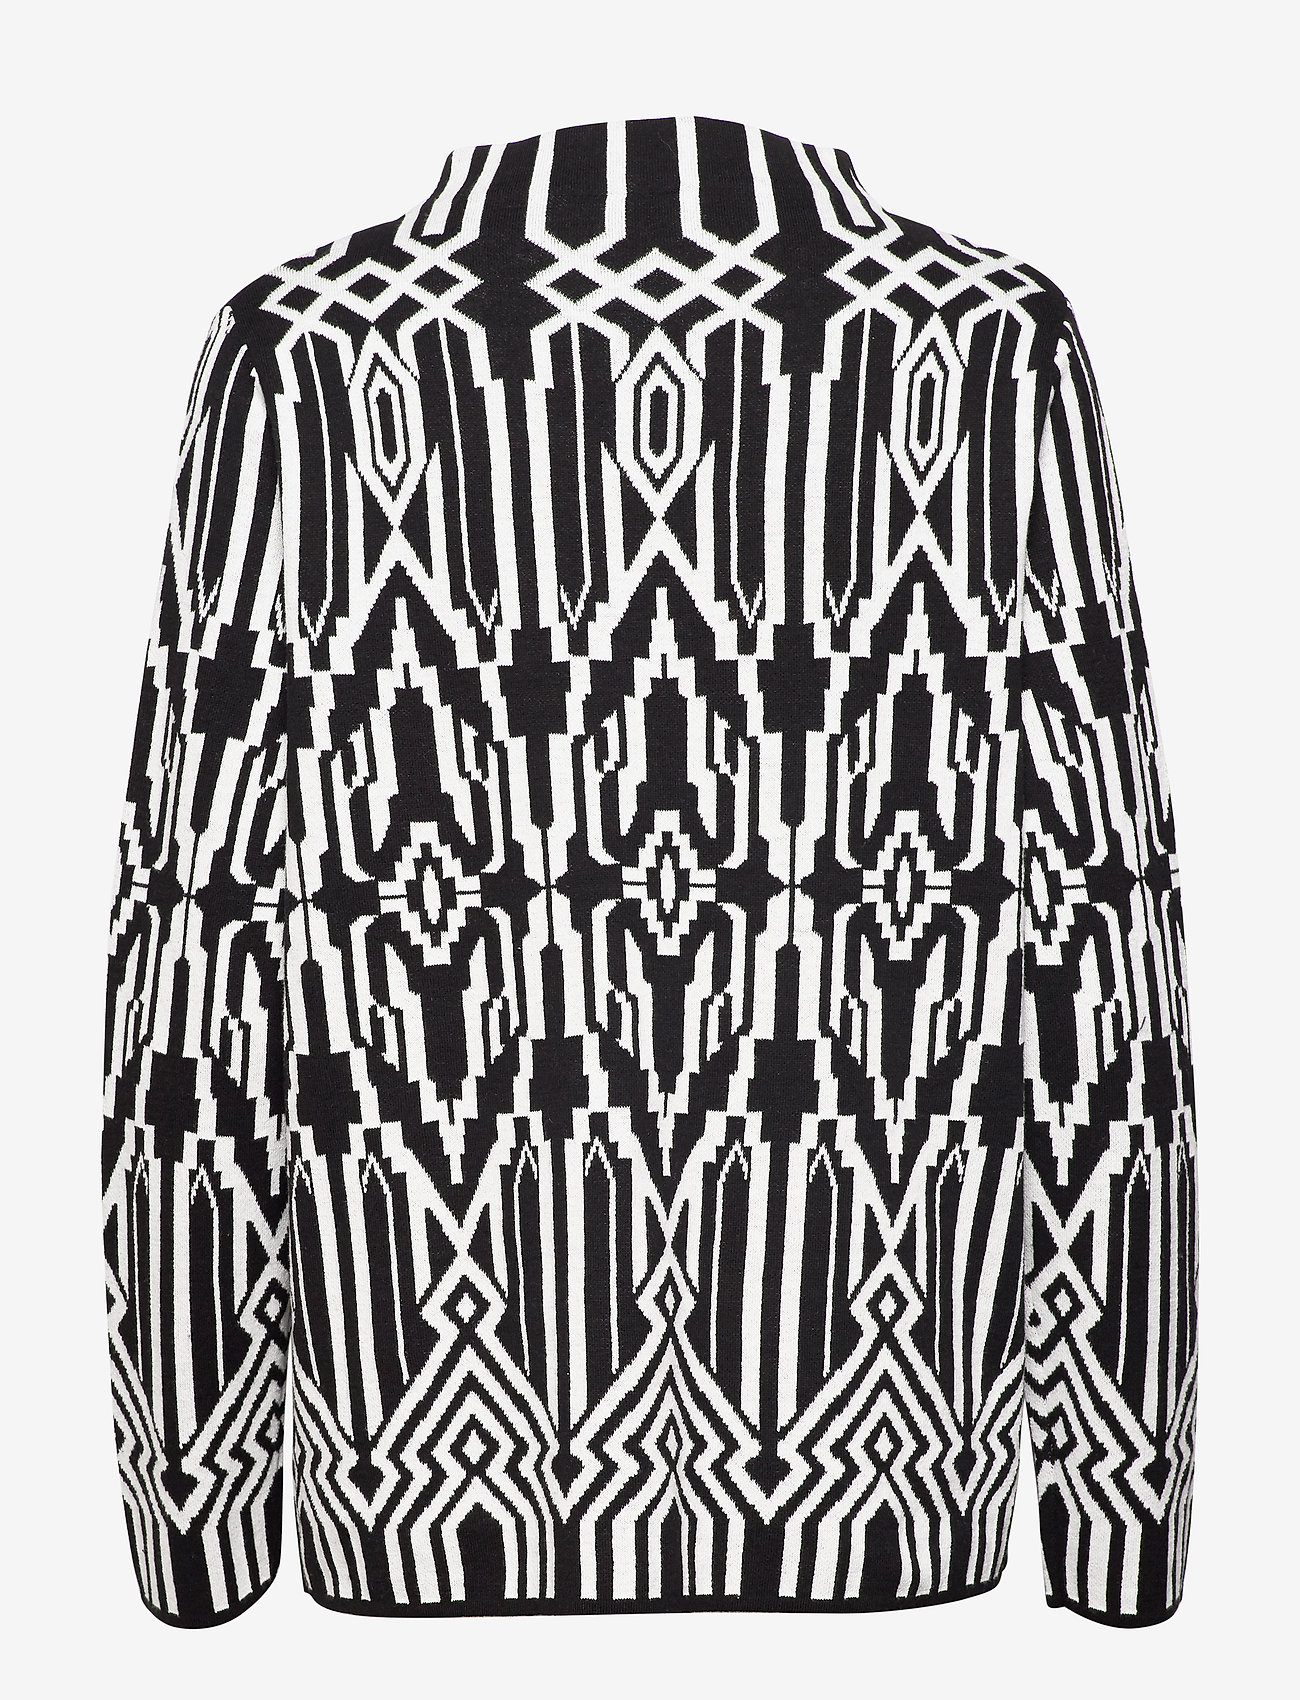 Pullover Long-sleeve (Black/ecru/white Figured) - Gerry Weber Edition 8tEAdW